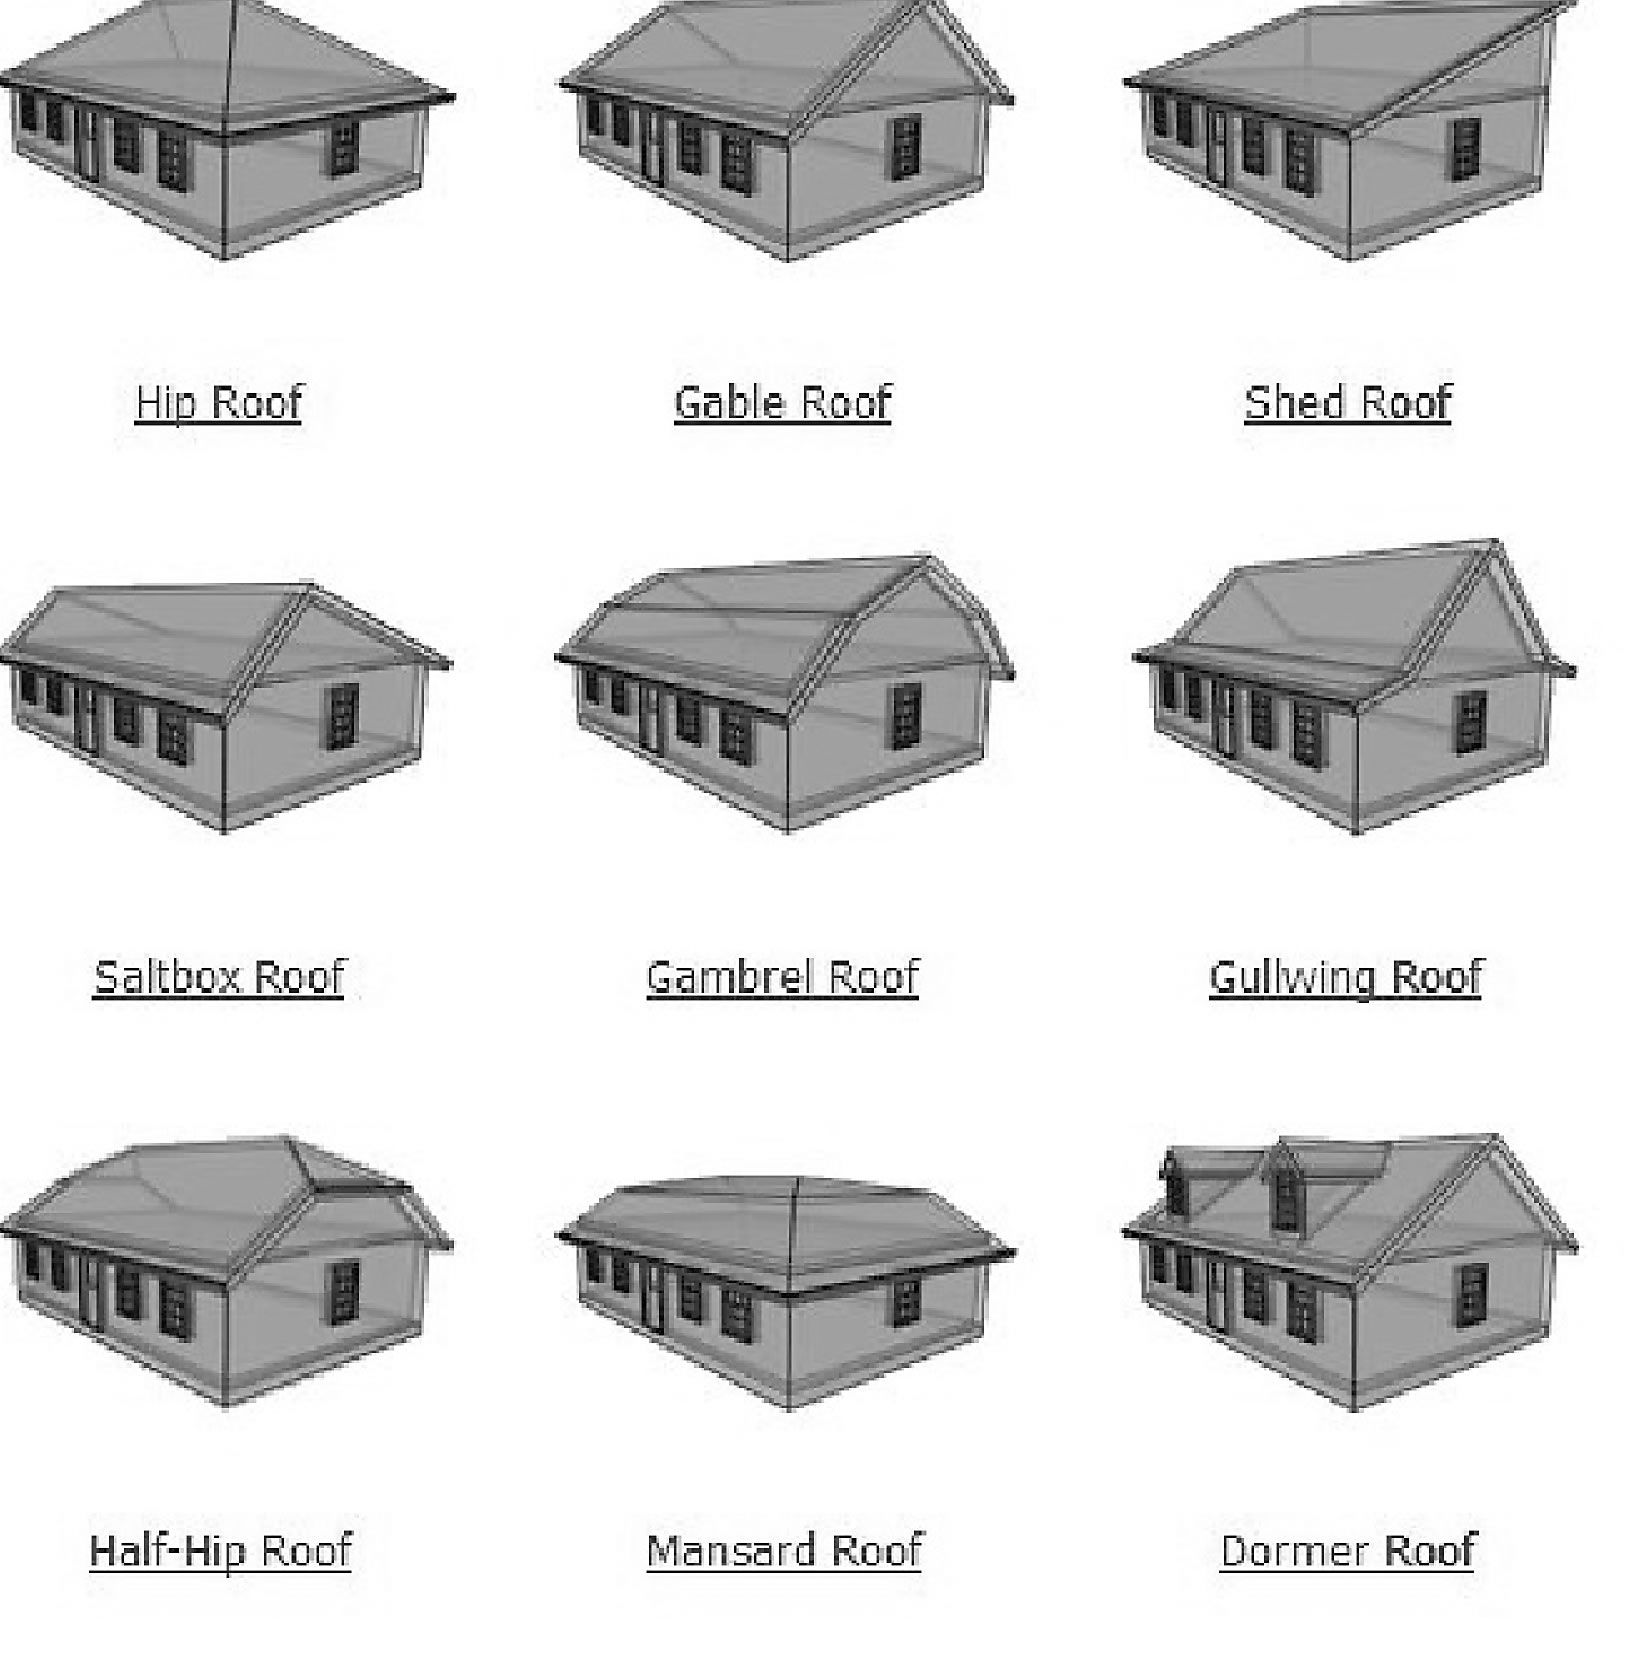 French roof styles roofs and shed dormer roofs they should